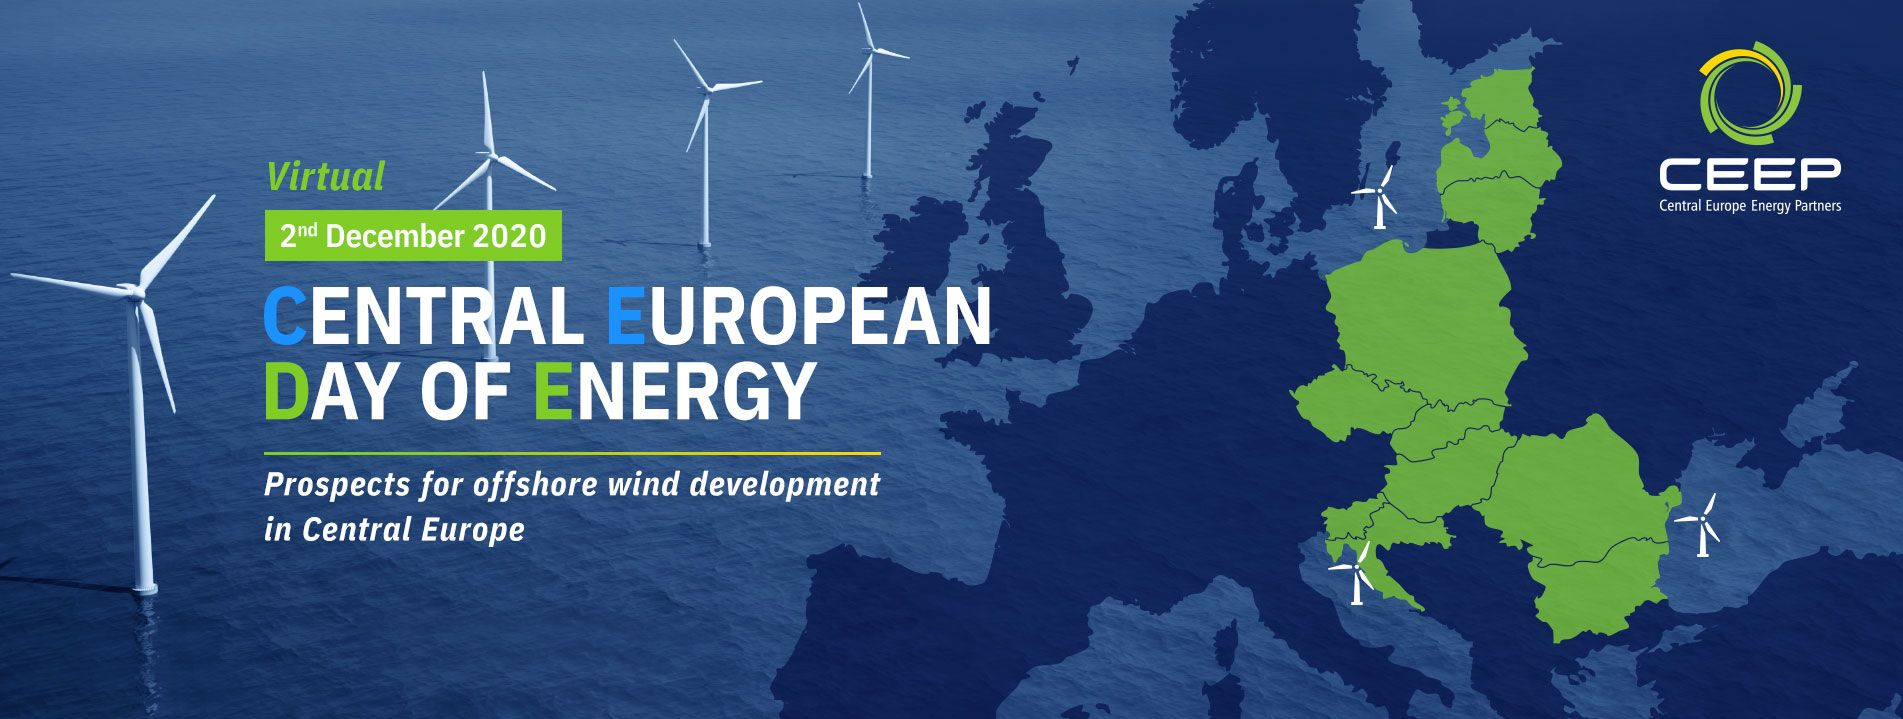 central european day of energy 2020